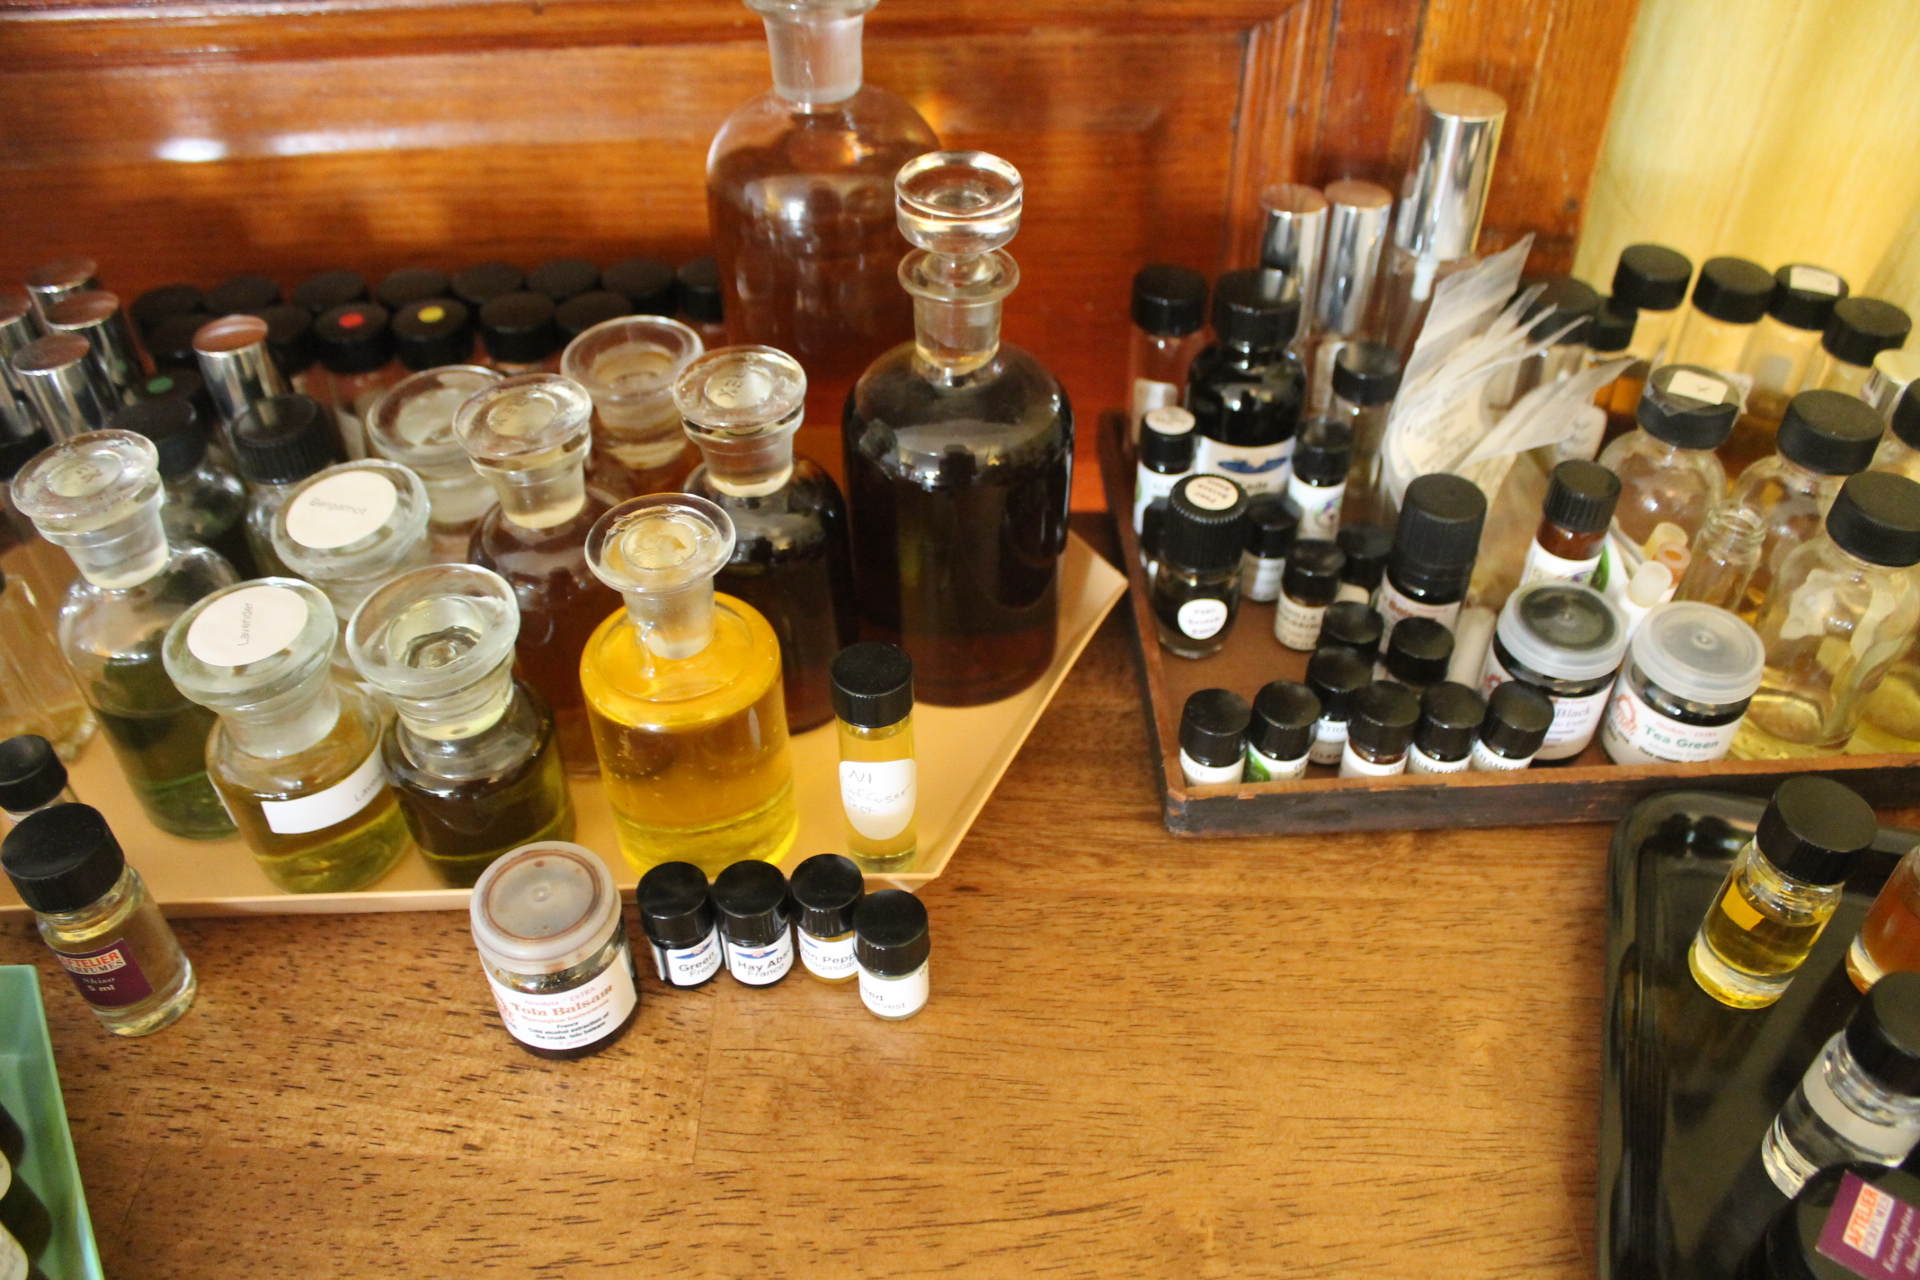 Jessica Hannah has curated a stellar assortment of perfume oil from across the globe- smoke, flowers, musk. It's all here.